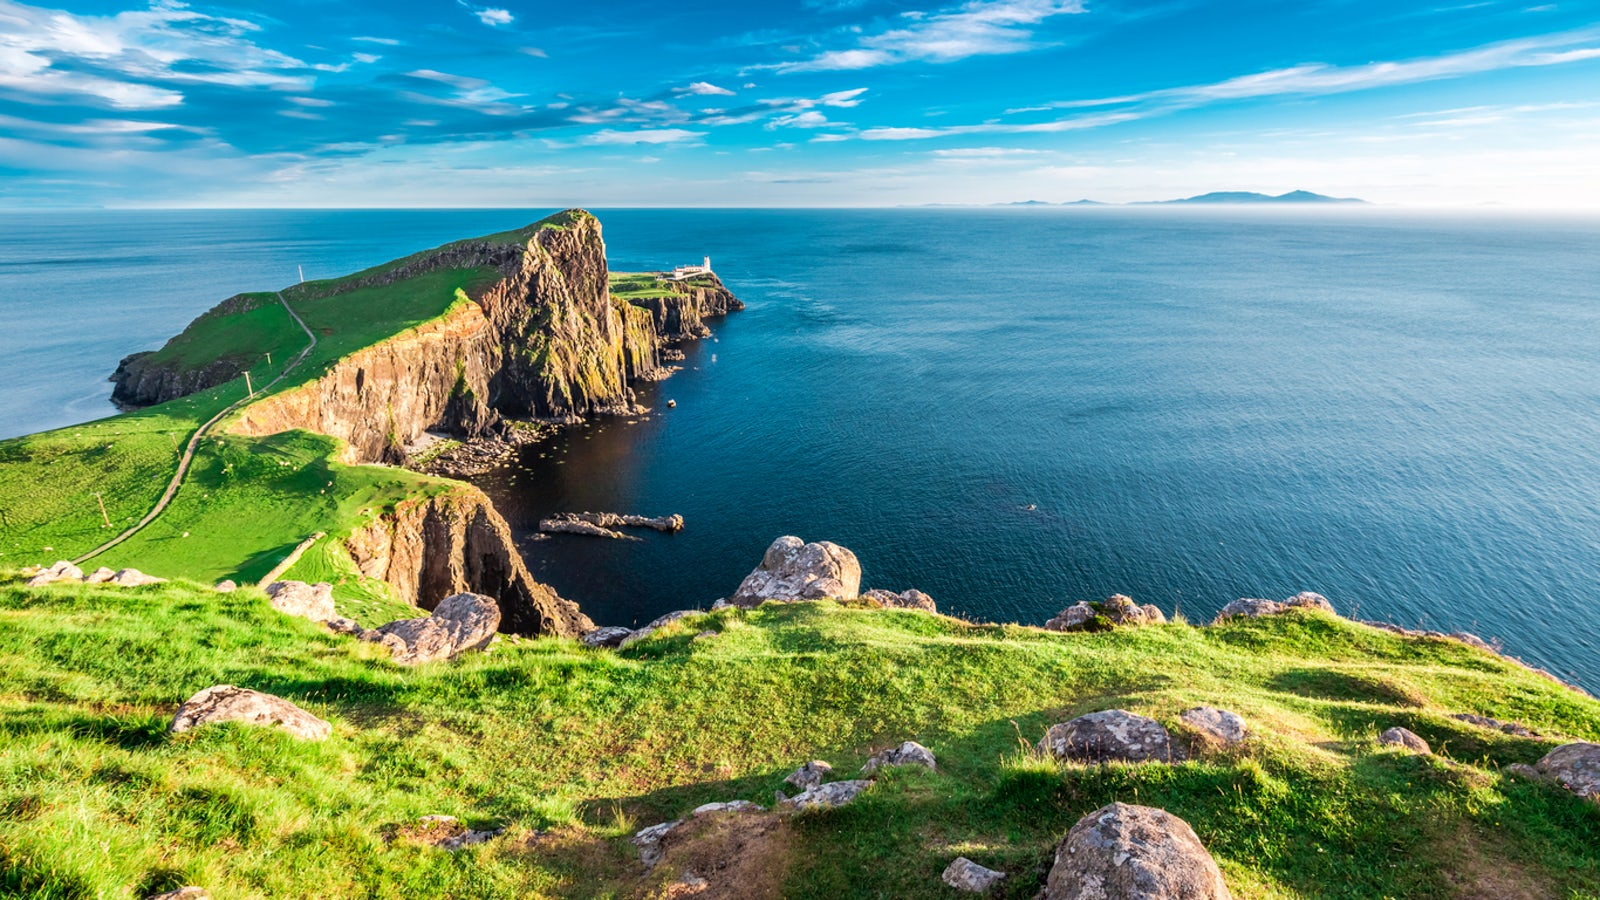 Neist Point Lighthouse on the Isle of Skye - cover picture © credits to Shaiith